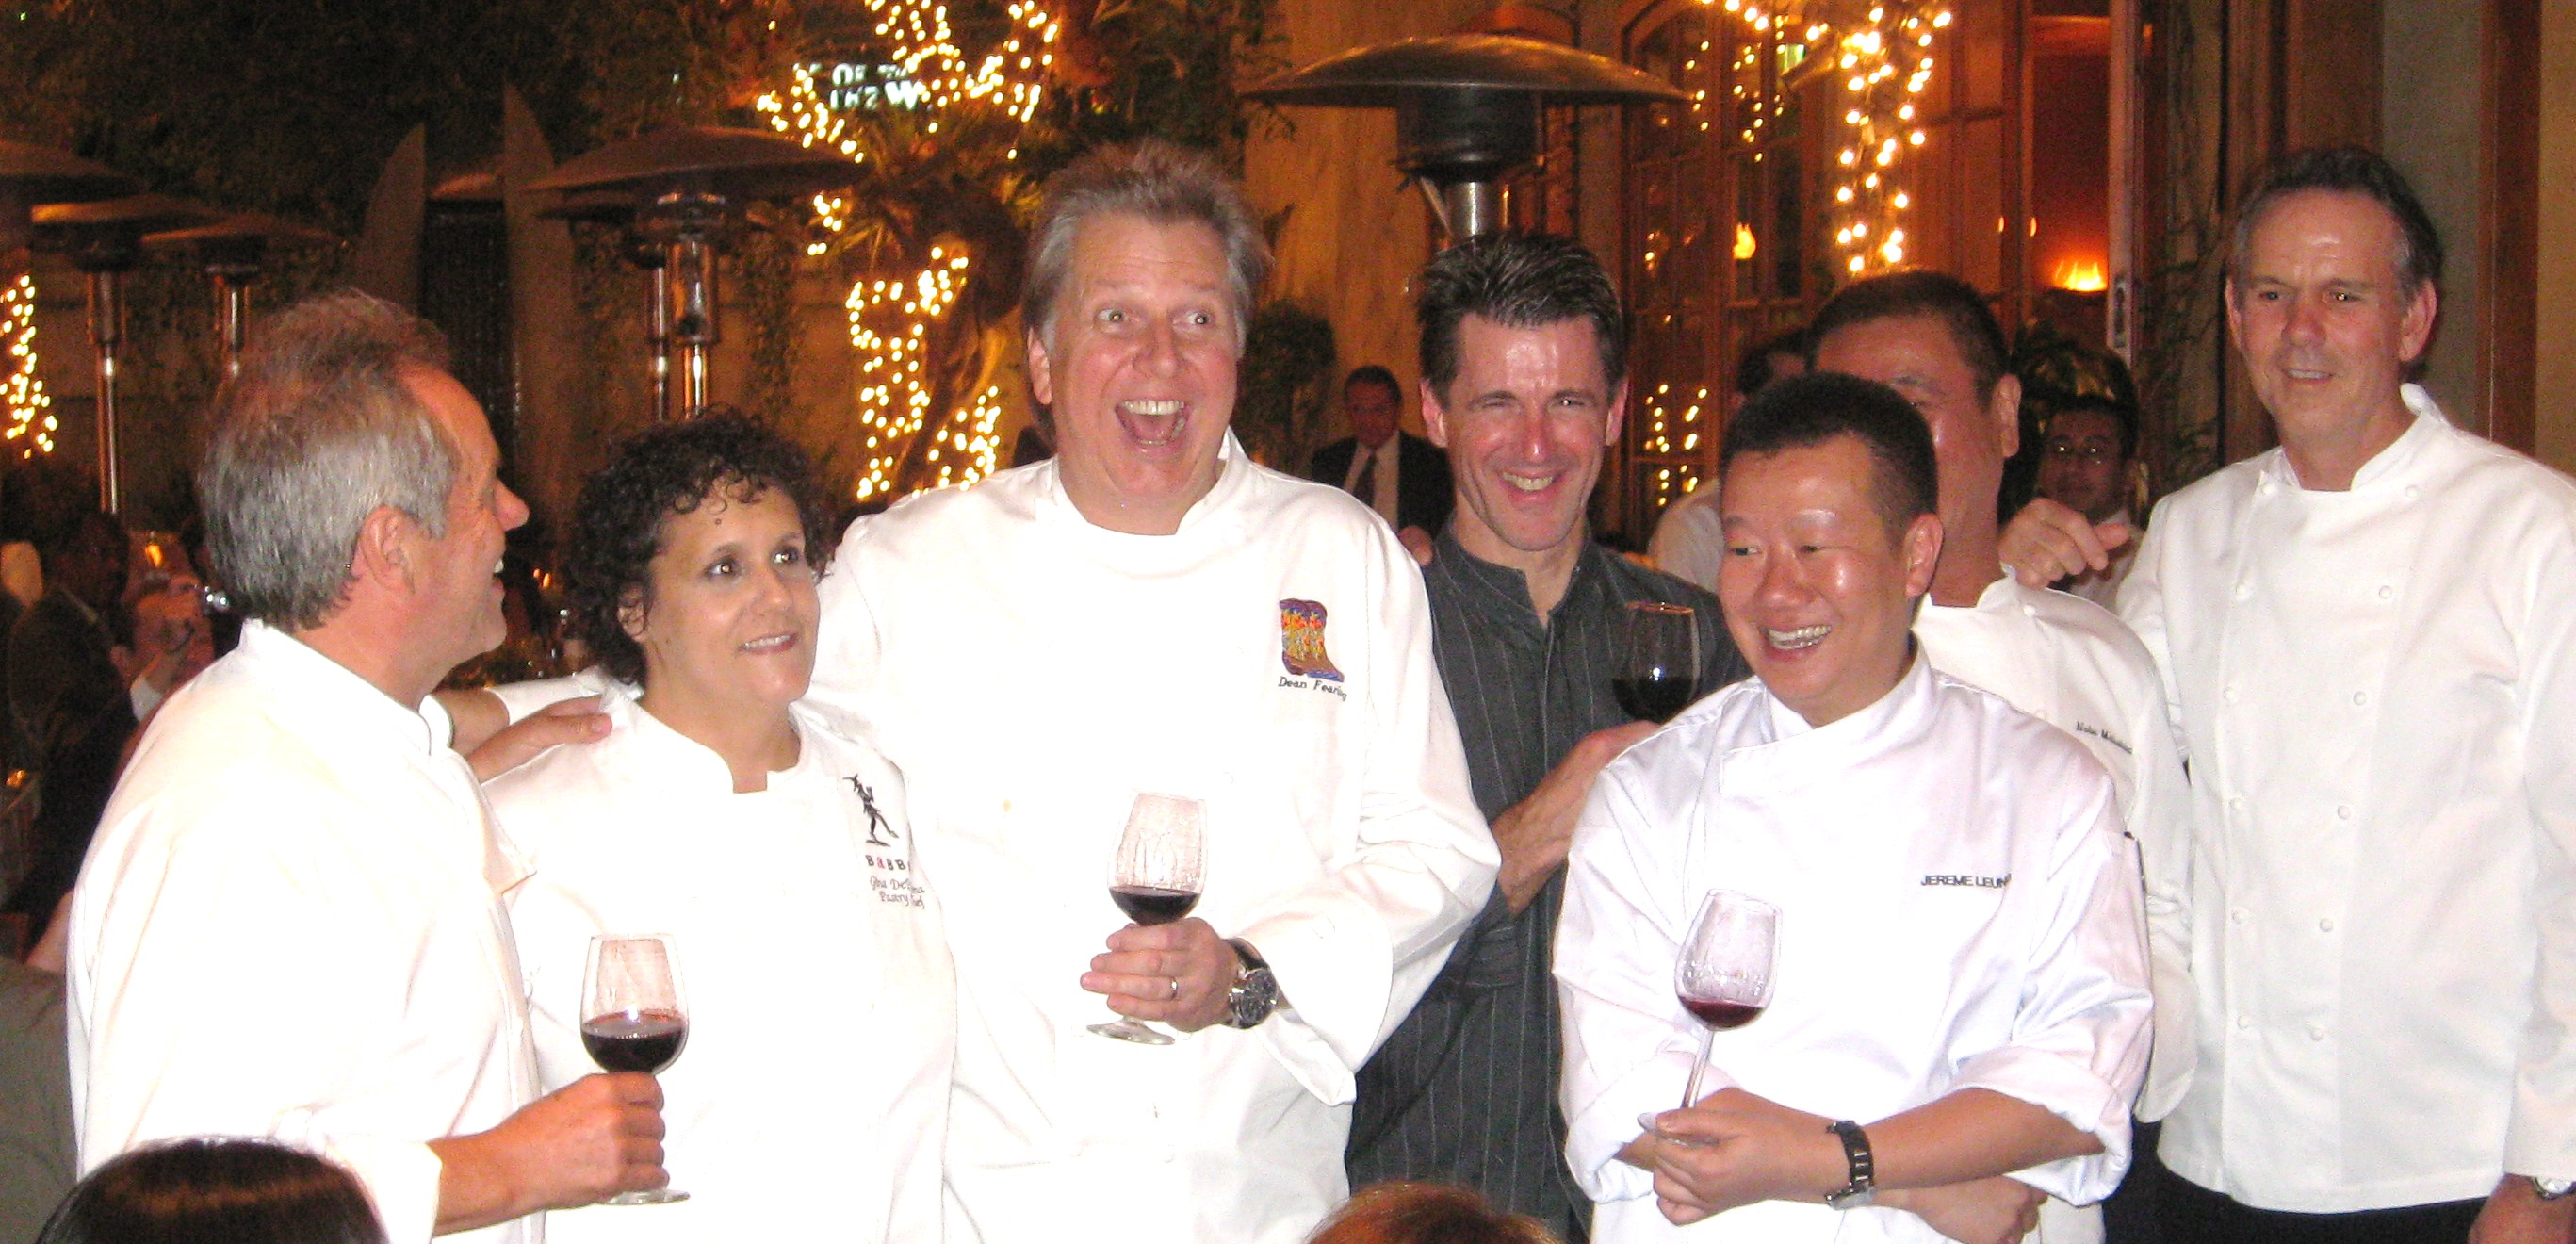 The chef's team of the evening